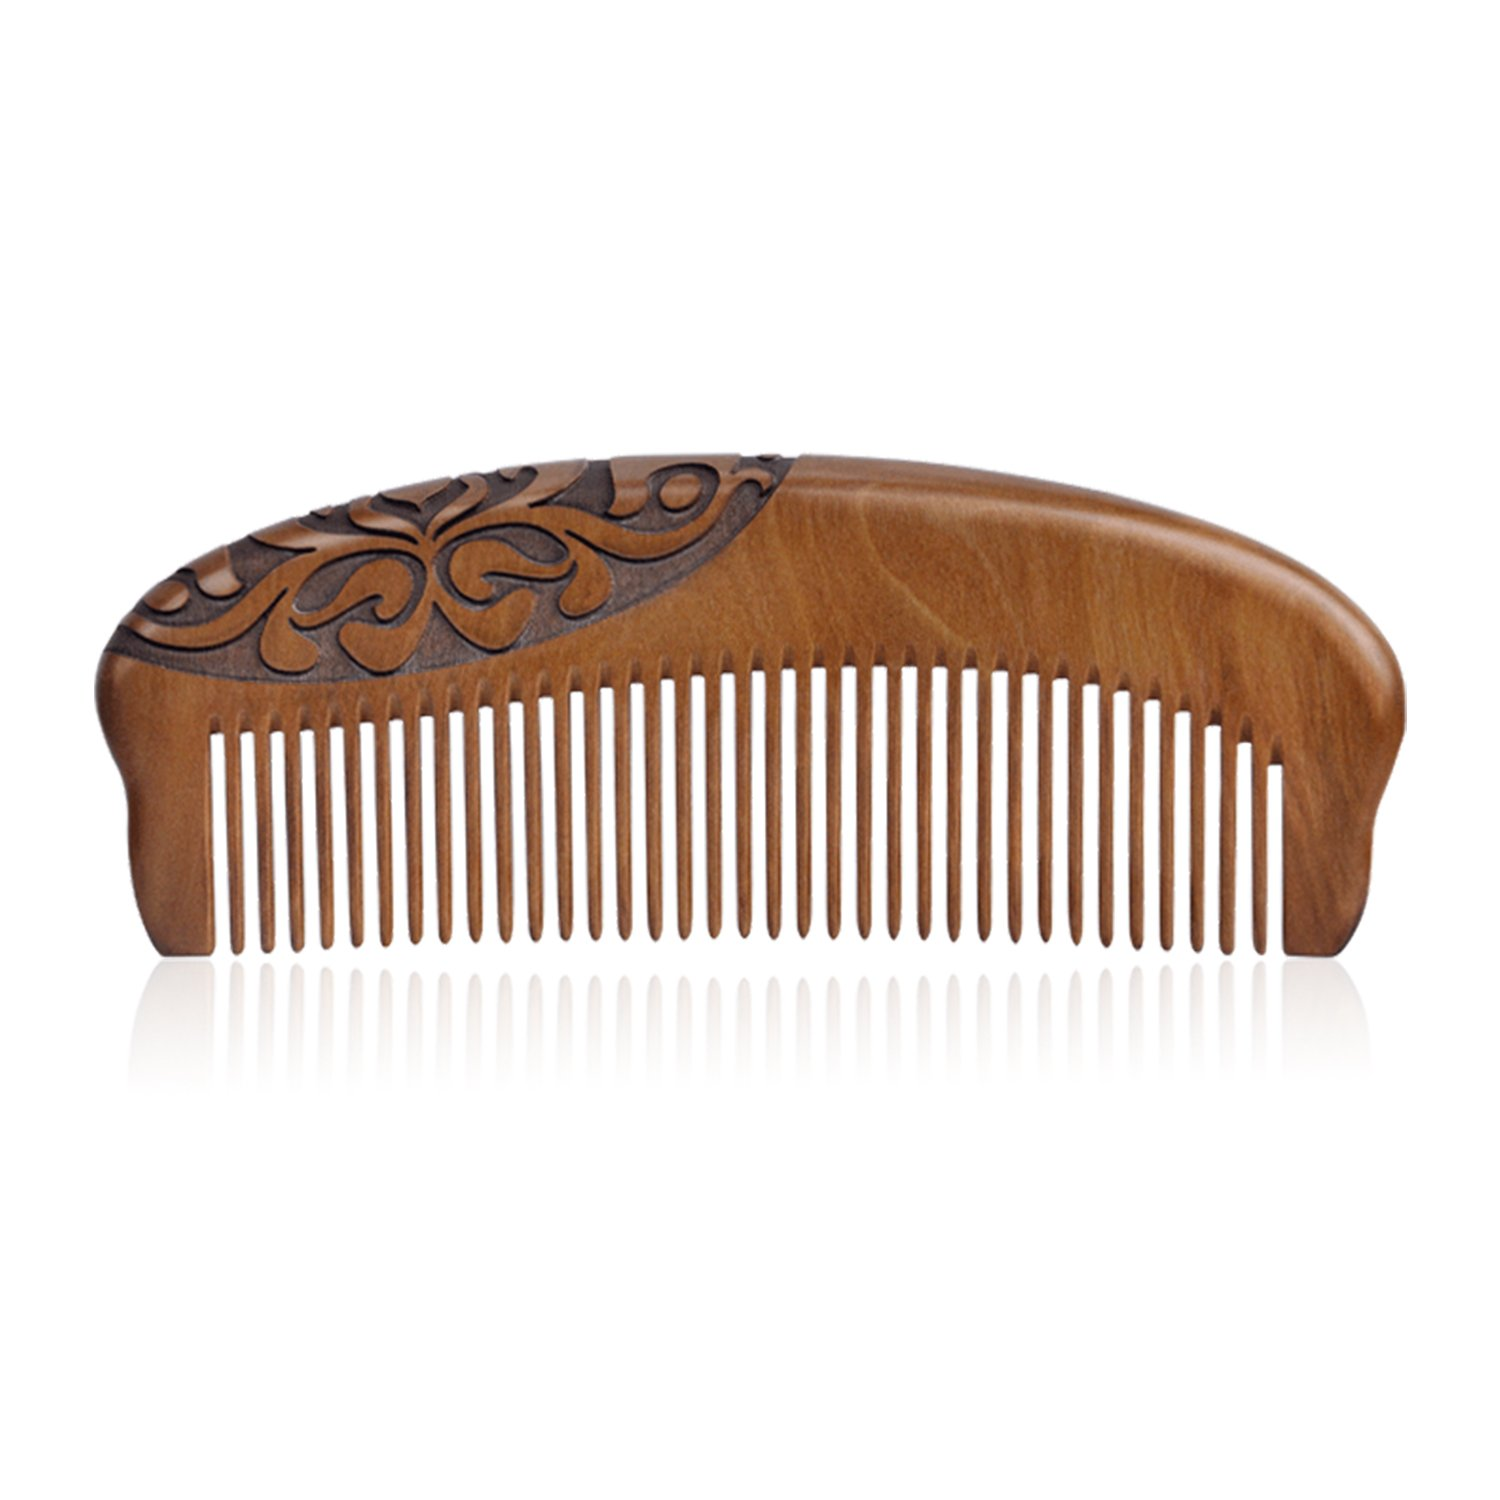 Yumary Fine Tooth Detangling Hairbrush Mahogany Handmade Comb With Anti Static Natural Aroma Wood Comb Eco-Friendly Flavour Traditional Chinese Sculpture Art Carvings By Gift Packaging